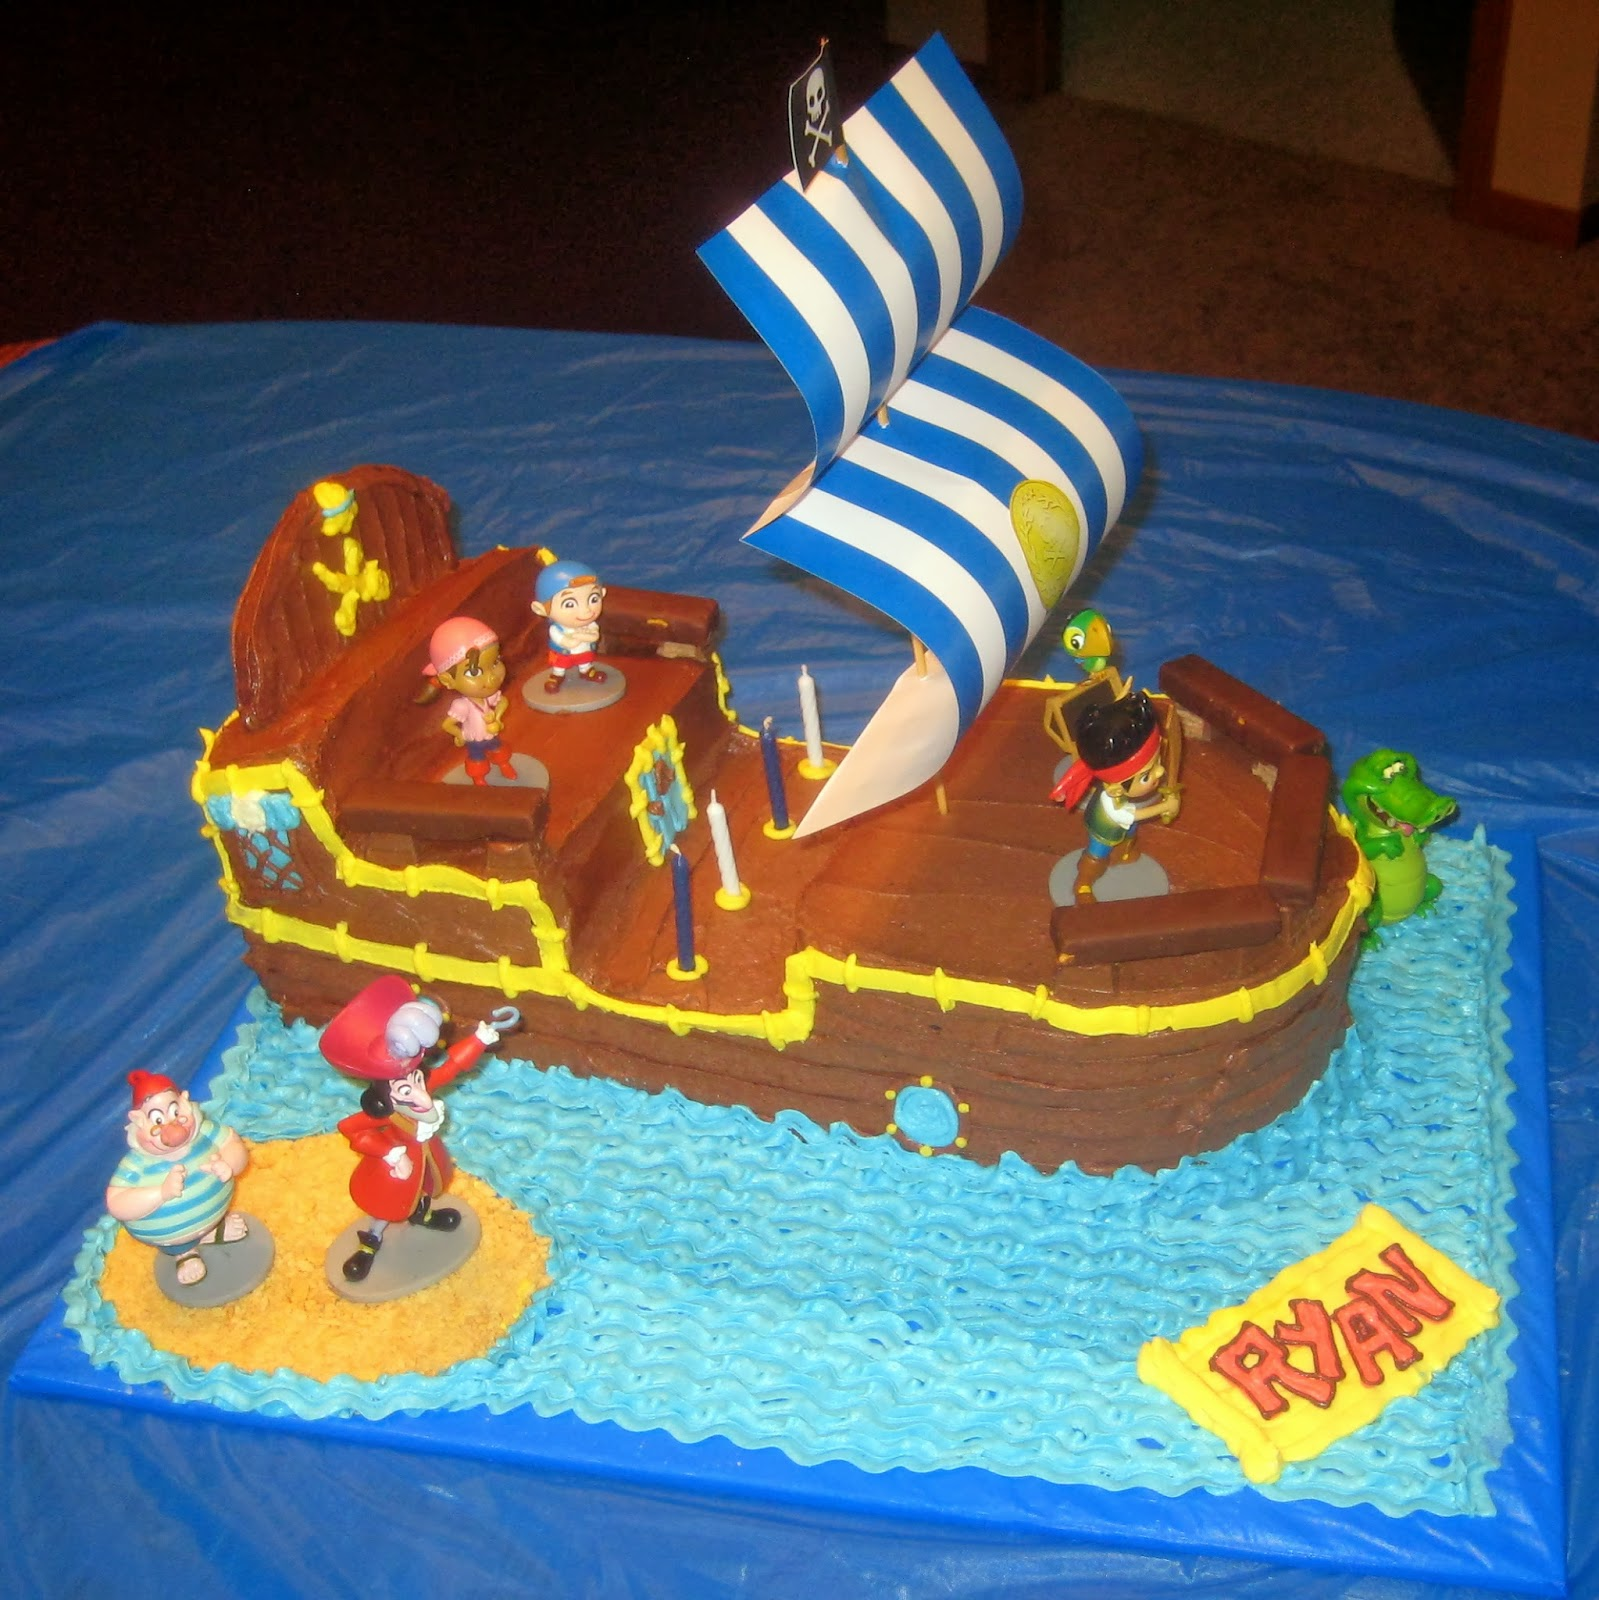 jake and the never land pirates cakespirate ship cakes Bucky the